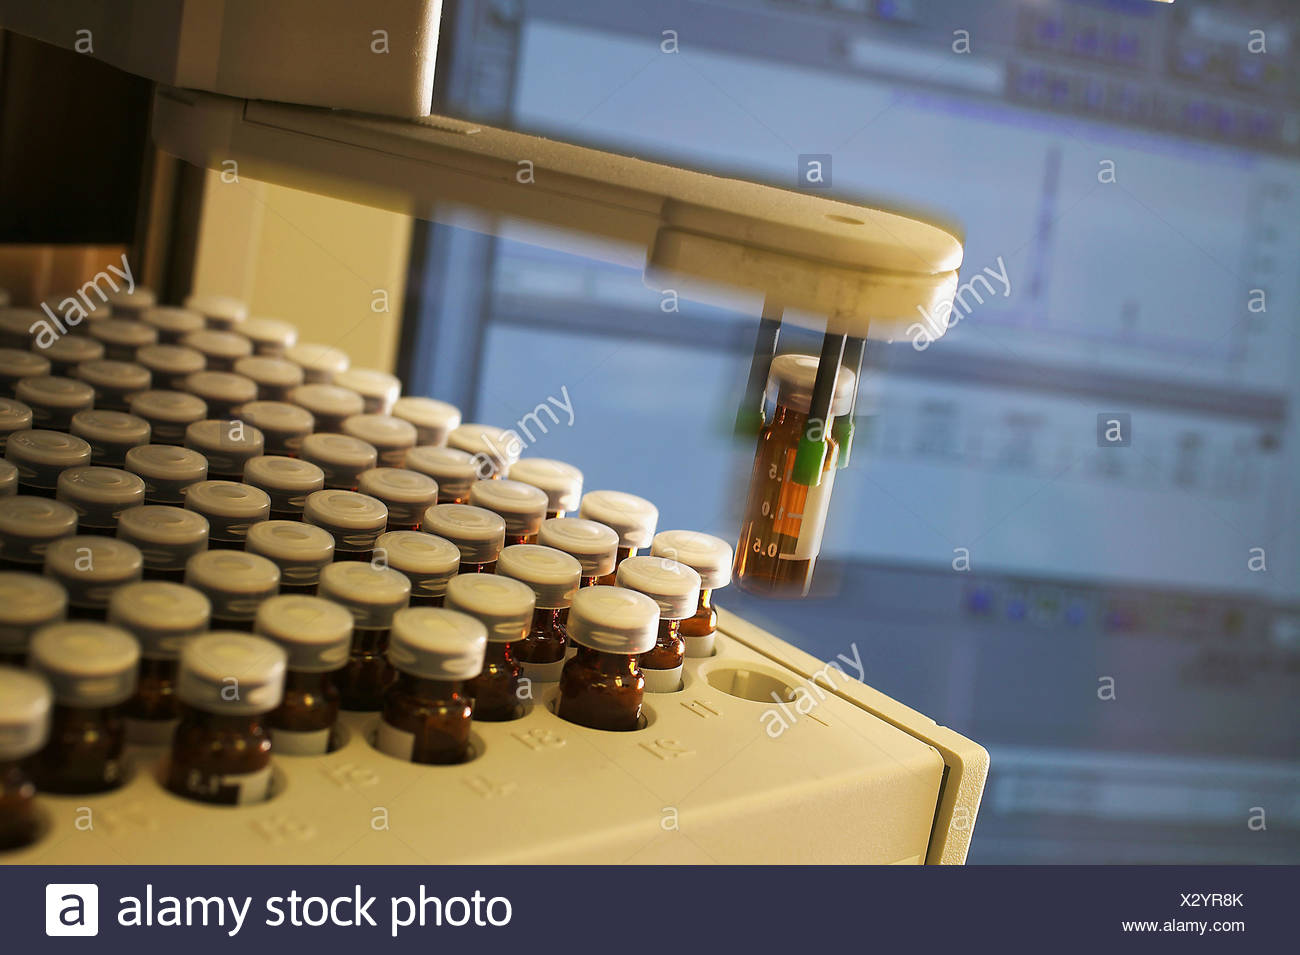 Diagnostics -quality control process in Pharmaceutical manufacturing facility - Stock Image